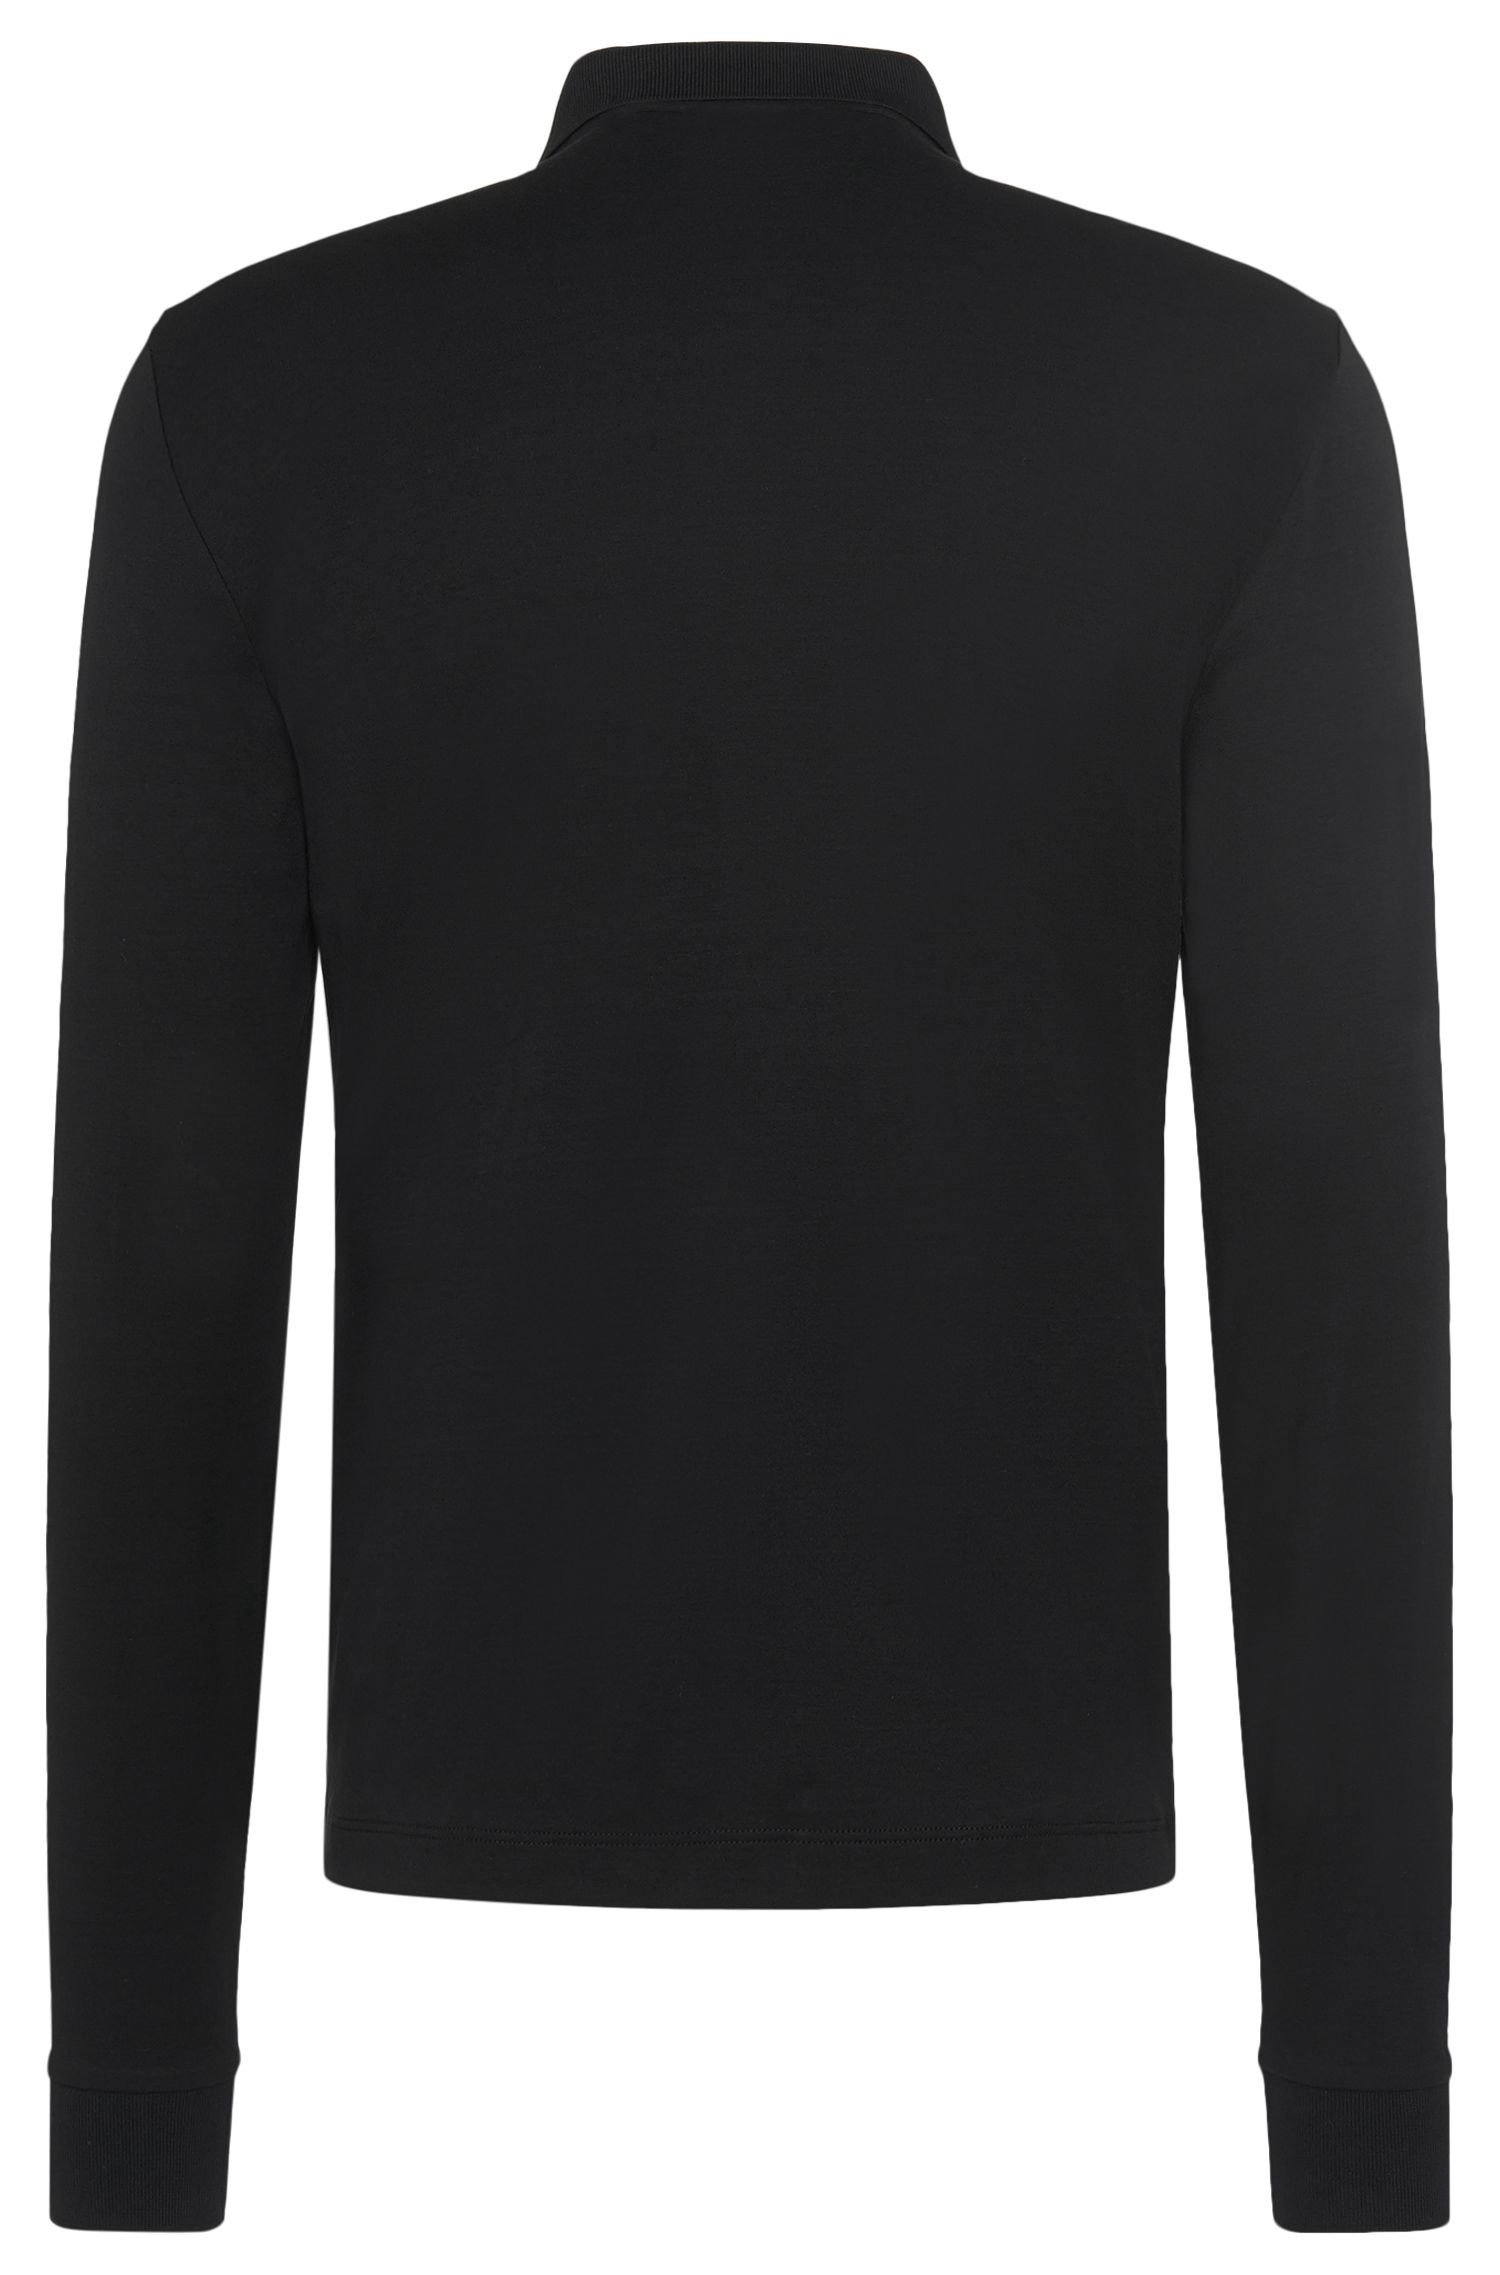 Regular-Fit Longsleeve-Poloshirt aus Pima-Baumwolle: 'Phillian'